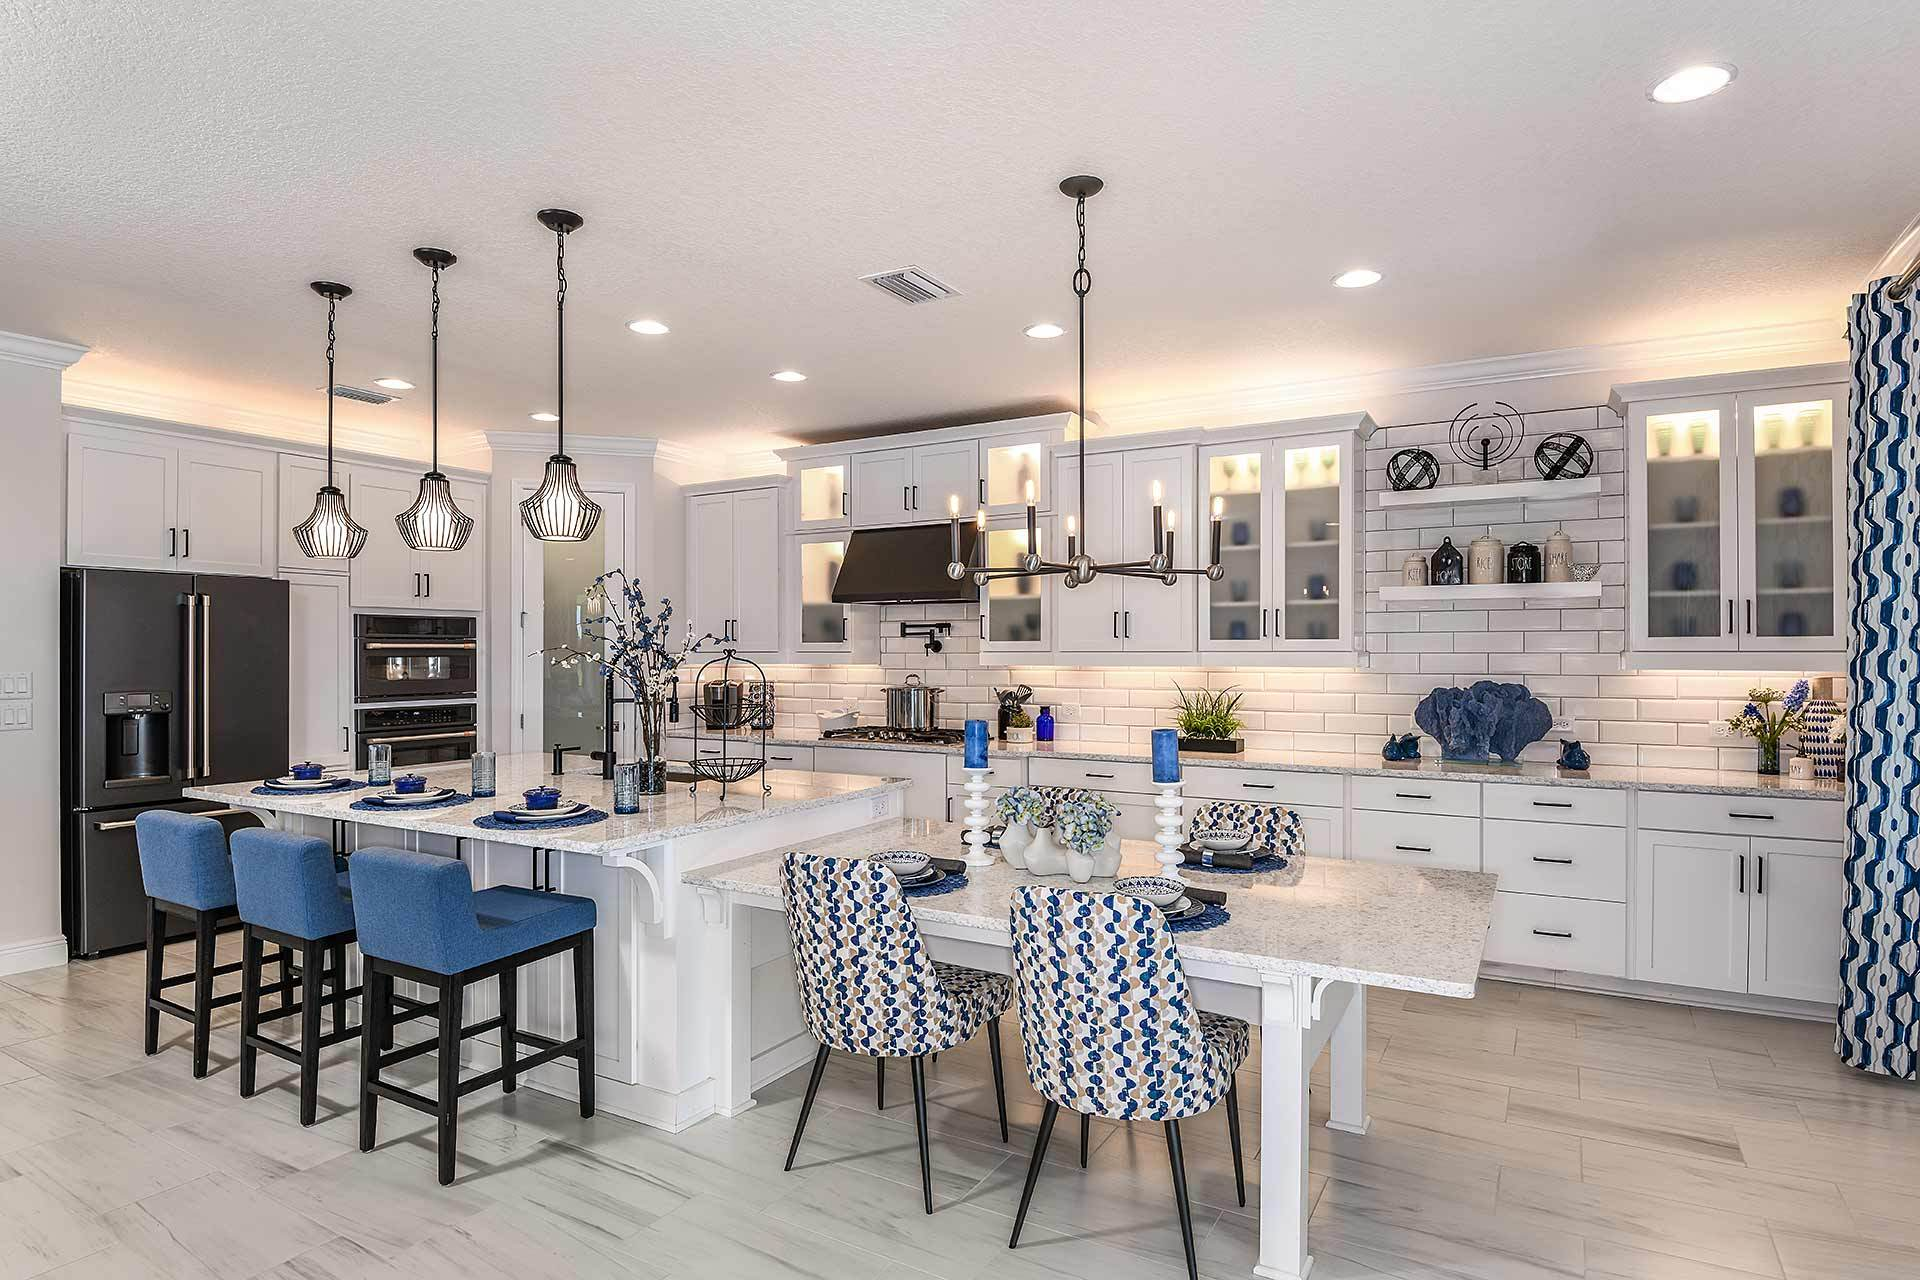 Kitchen featured in the Virginia Park By Homes by WestBay in Tampa-St. Petersburg, FL